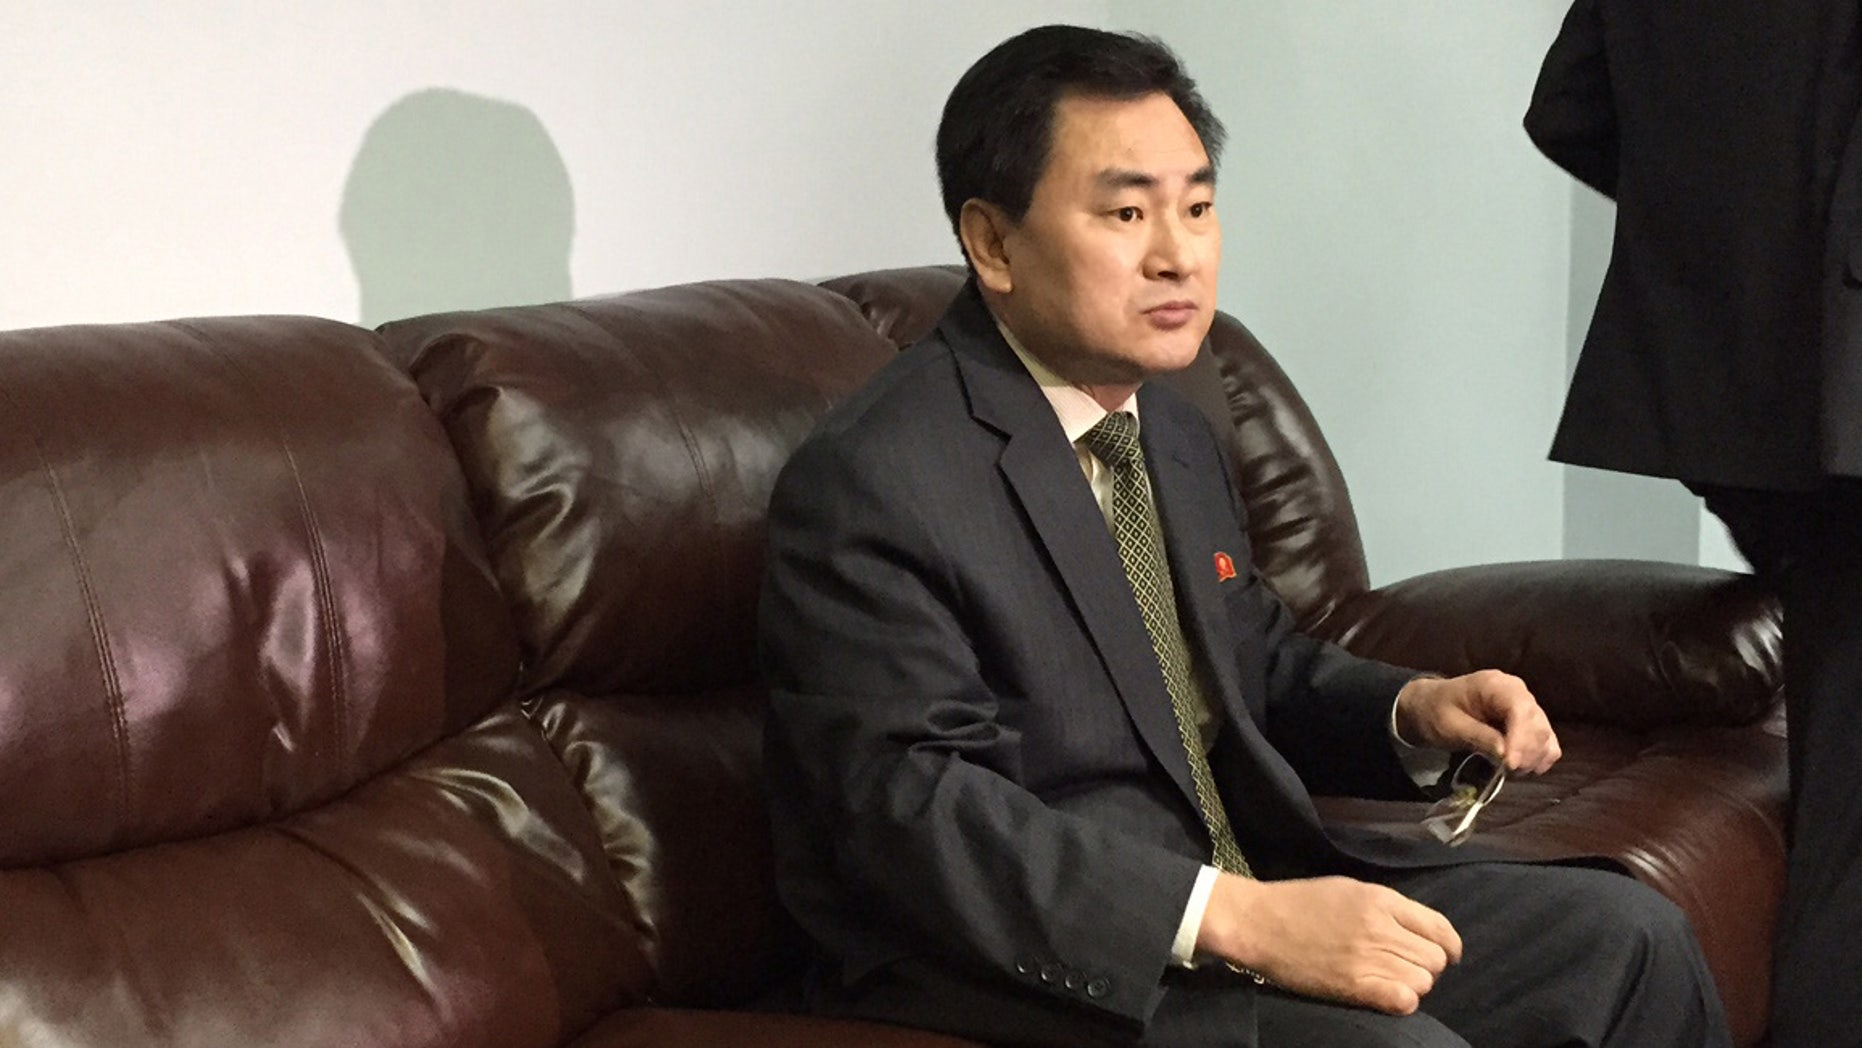 """North Koreaâs deputy permanent representative to the United Nations, An Myong Hun, waits to speak to reporters at North Koreaâs U.N. mission in New York, Wednesday April 8, 2015. Hun said Mexico has """"forcibly detained"""" one of its ships months after it ran aground off Mexico's Gulf coast and that his country will take unspecified """"necessary measures to make the ship leave immediately."""" An Myong Hun said the ship, the Mu Du Bong, was not carrying anything prohibited by U.N. sanctions and that more than 50 crew remain on board. (AP Photo/Cara Anna)"""